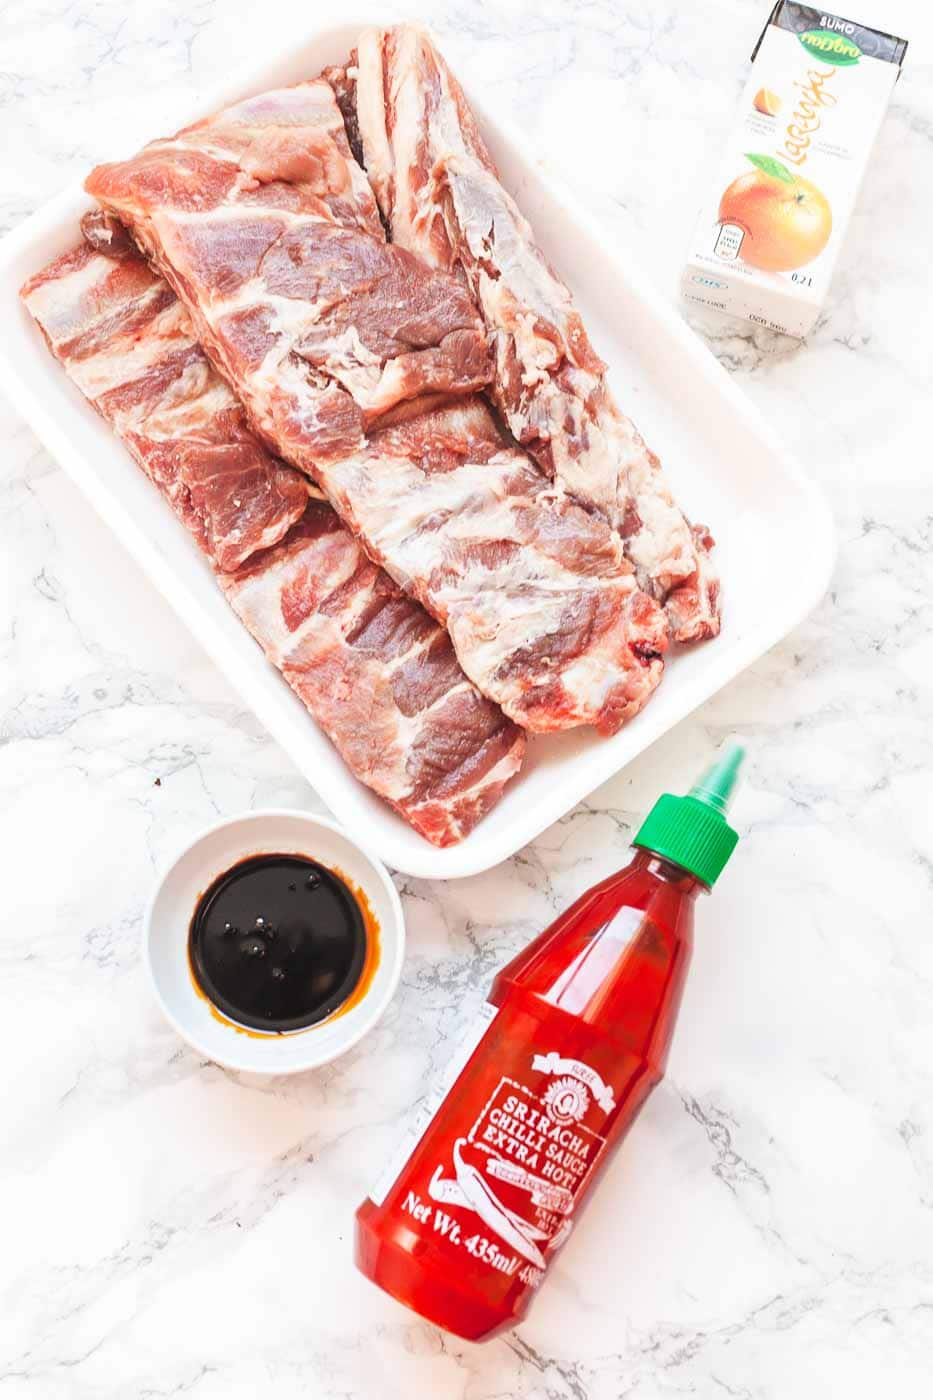 Looking for simple and quick grilled spare ribs? Try this barbecue pork ribs recipe and you have BBQ ribs on the table in a little over an hour. Visit fastfoodbistro.com for the full recipe #fastfoodbistro #grilledspareribs #grilledporkribs #bbqporkribs #howtogrillribs #howtogrillspareribs #sweetsoyribs